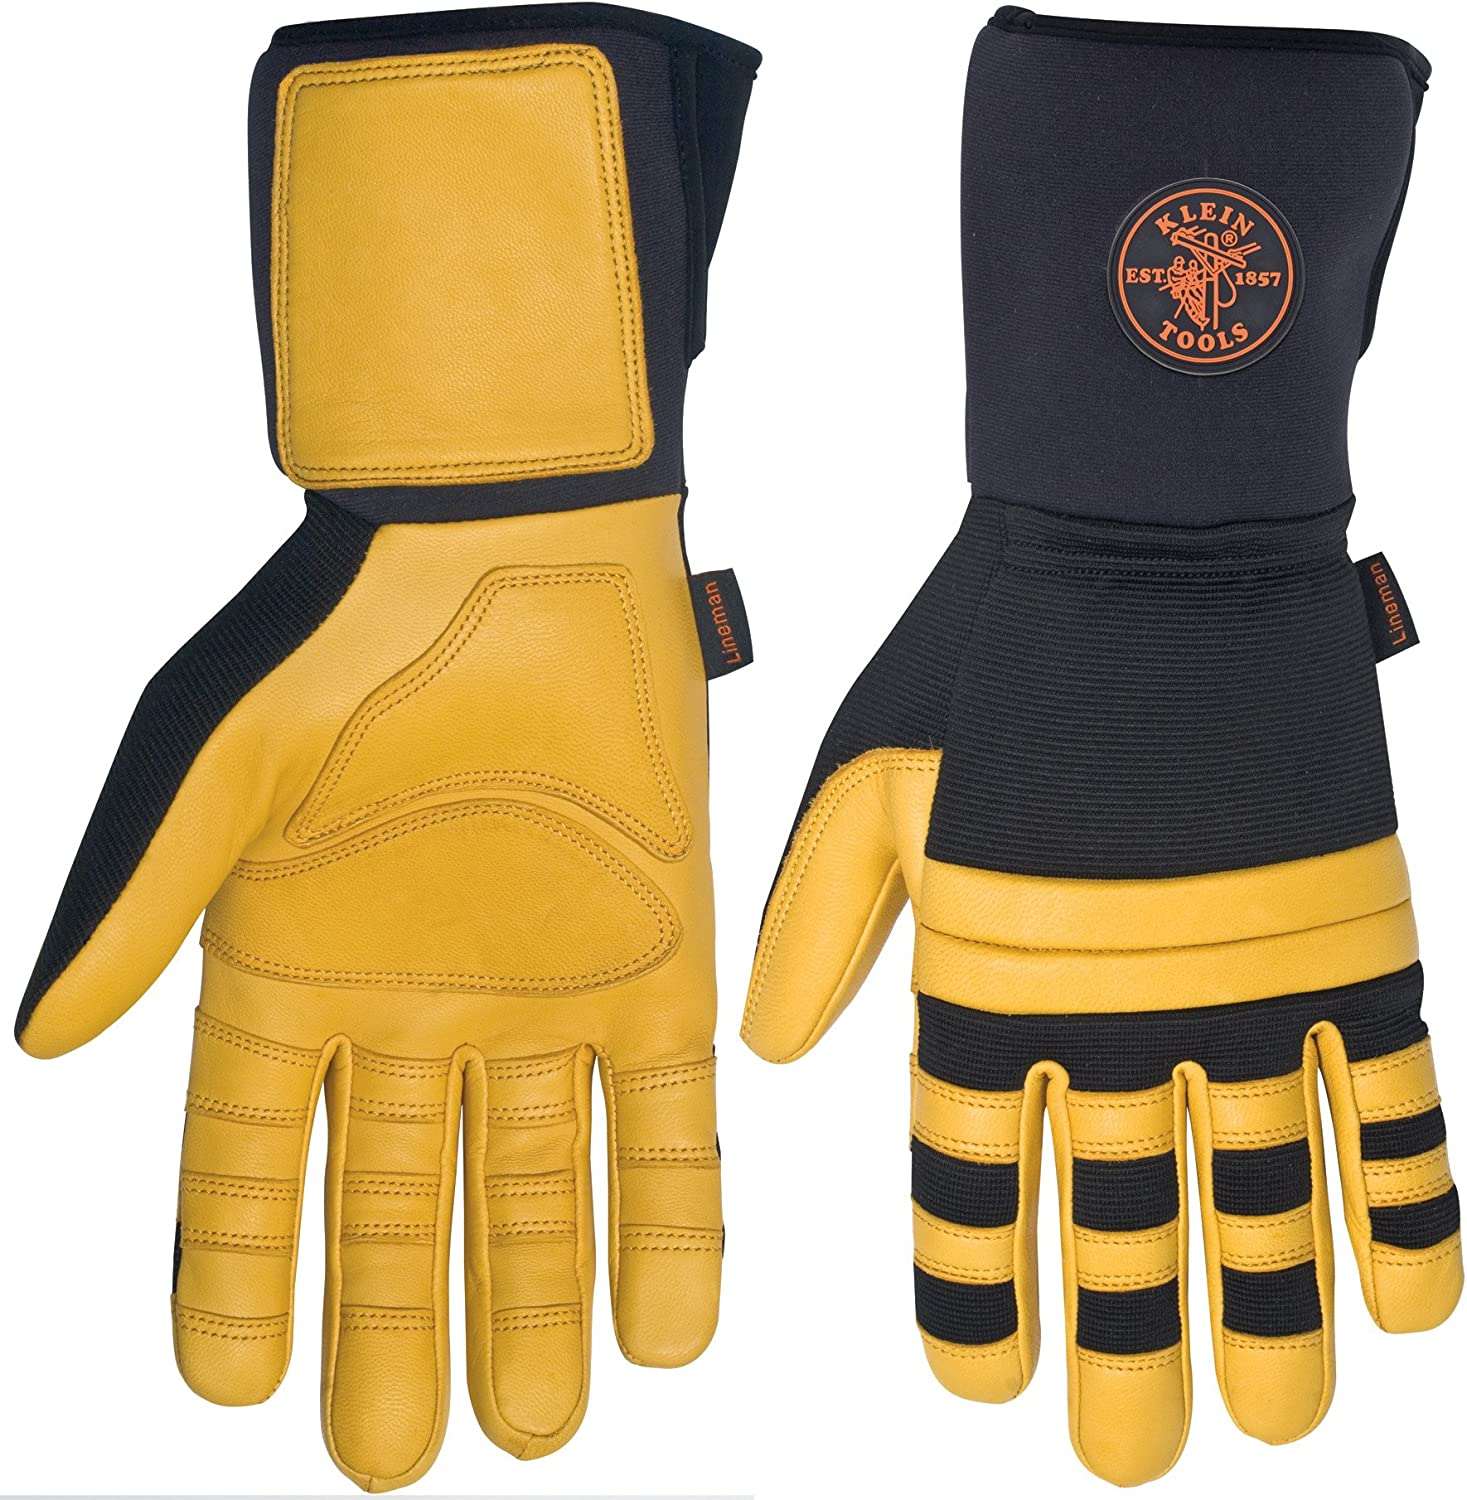 Lineman Work Glove